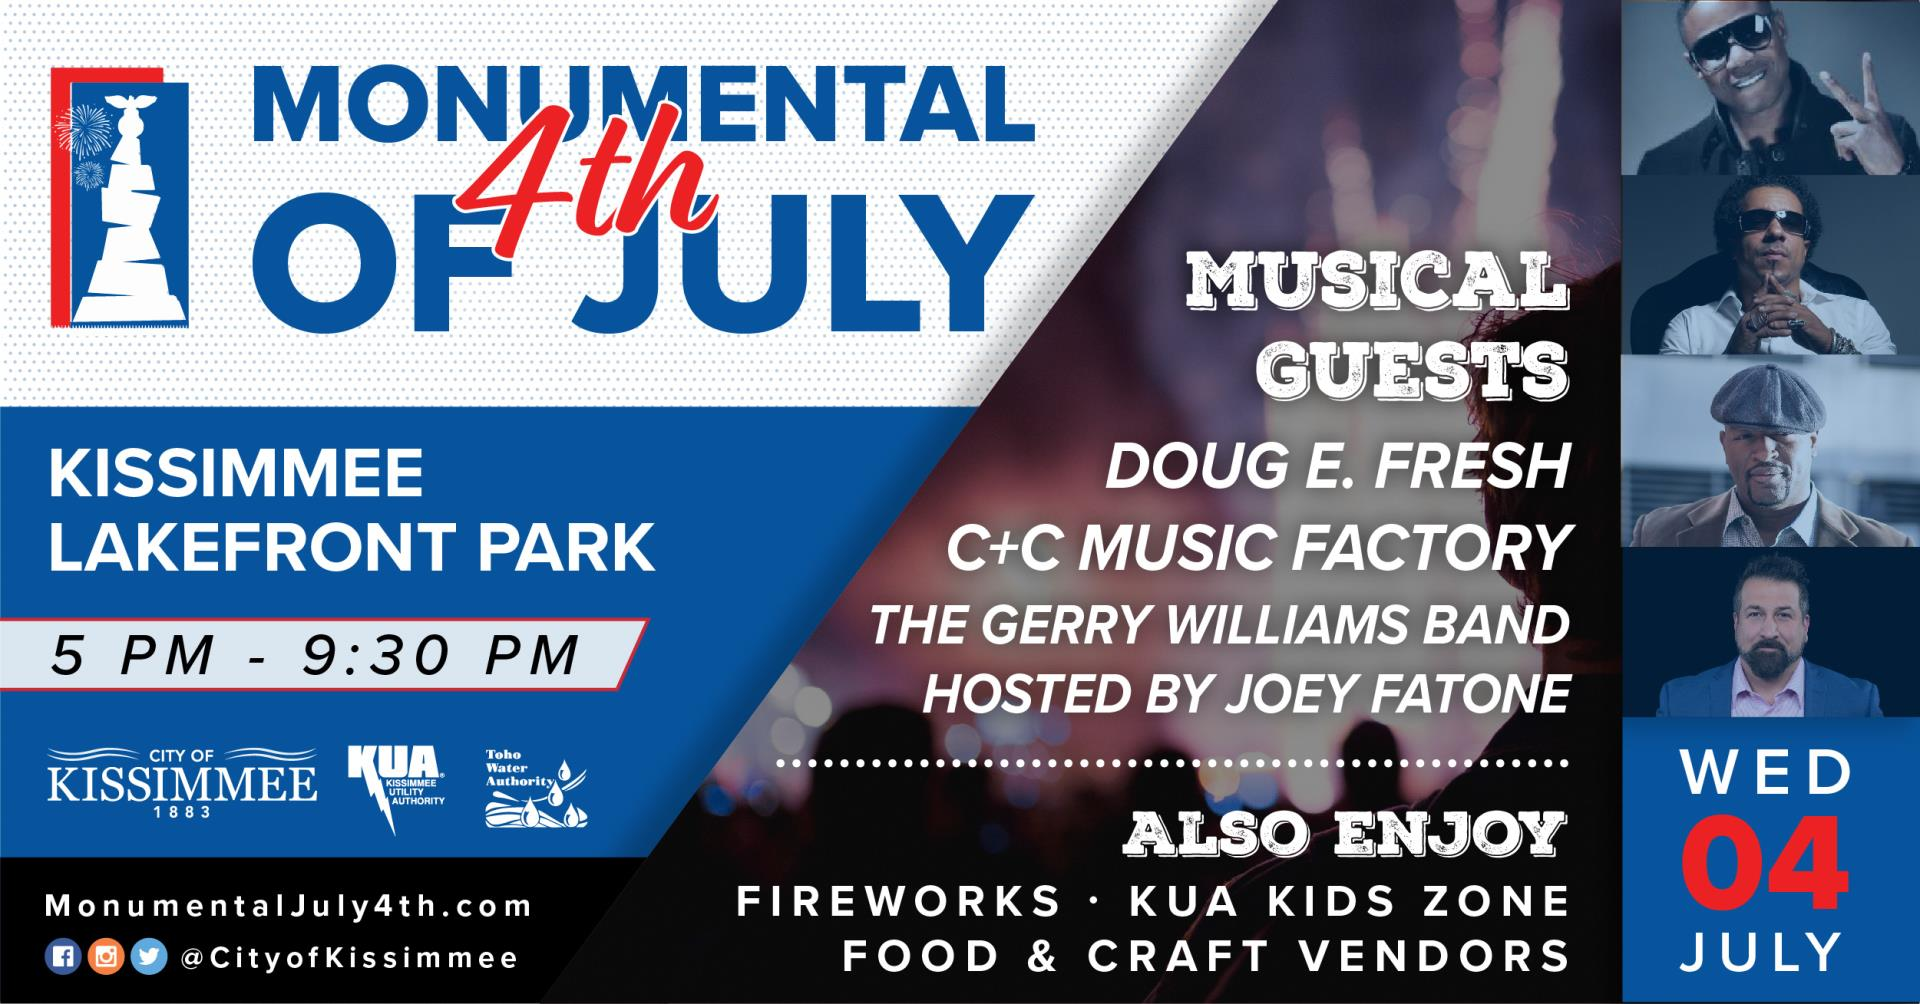 Monumental 4th of July Marketing Material_Social Media